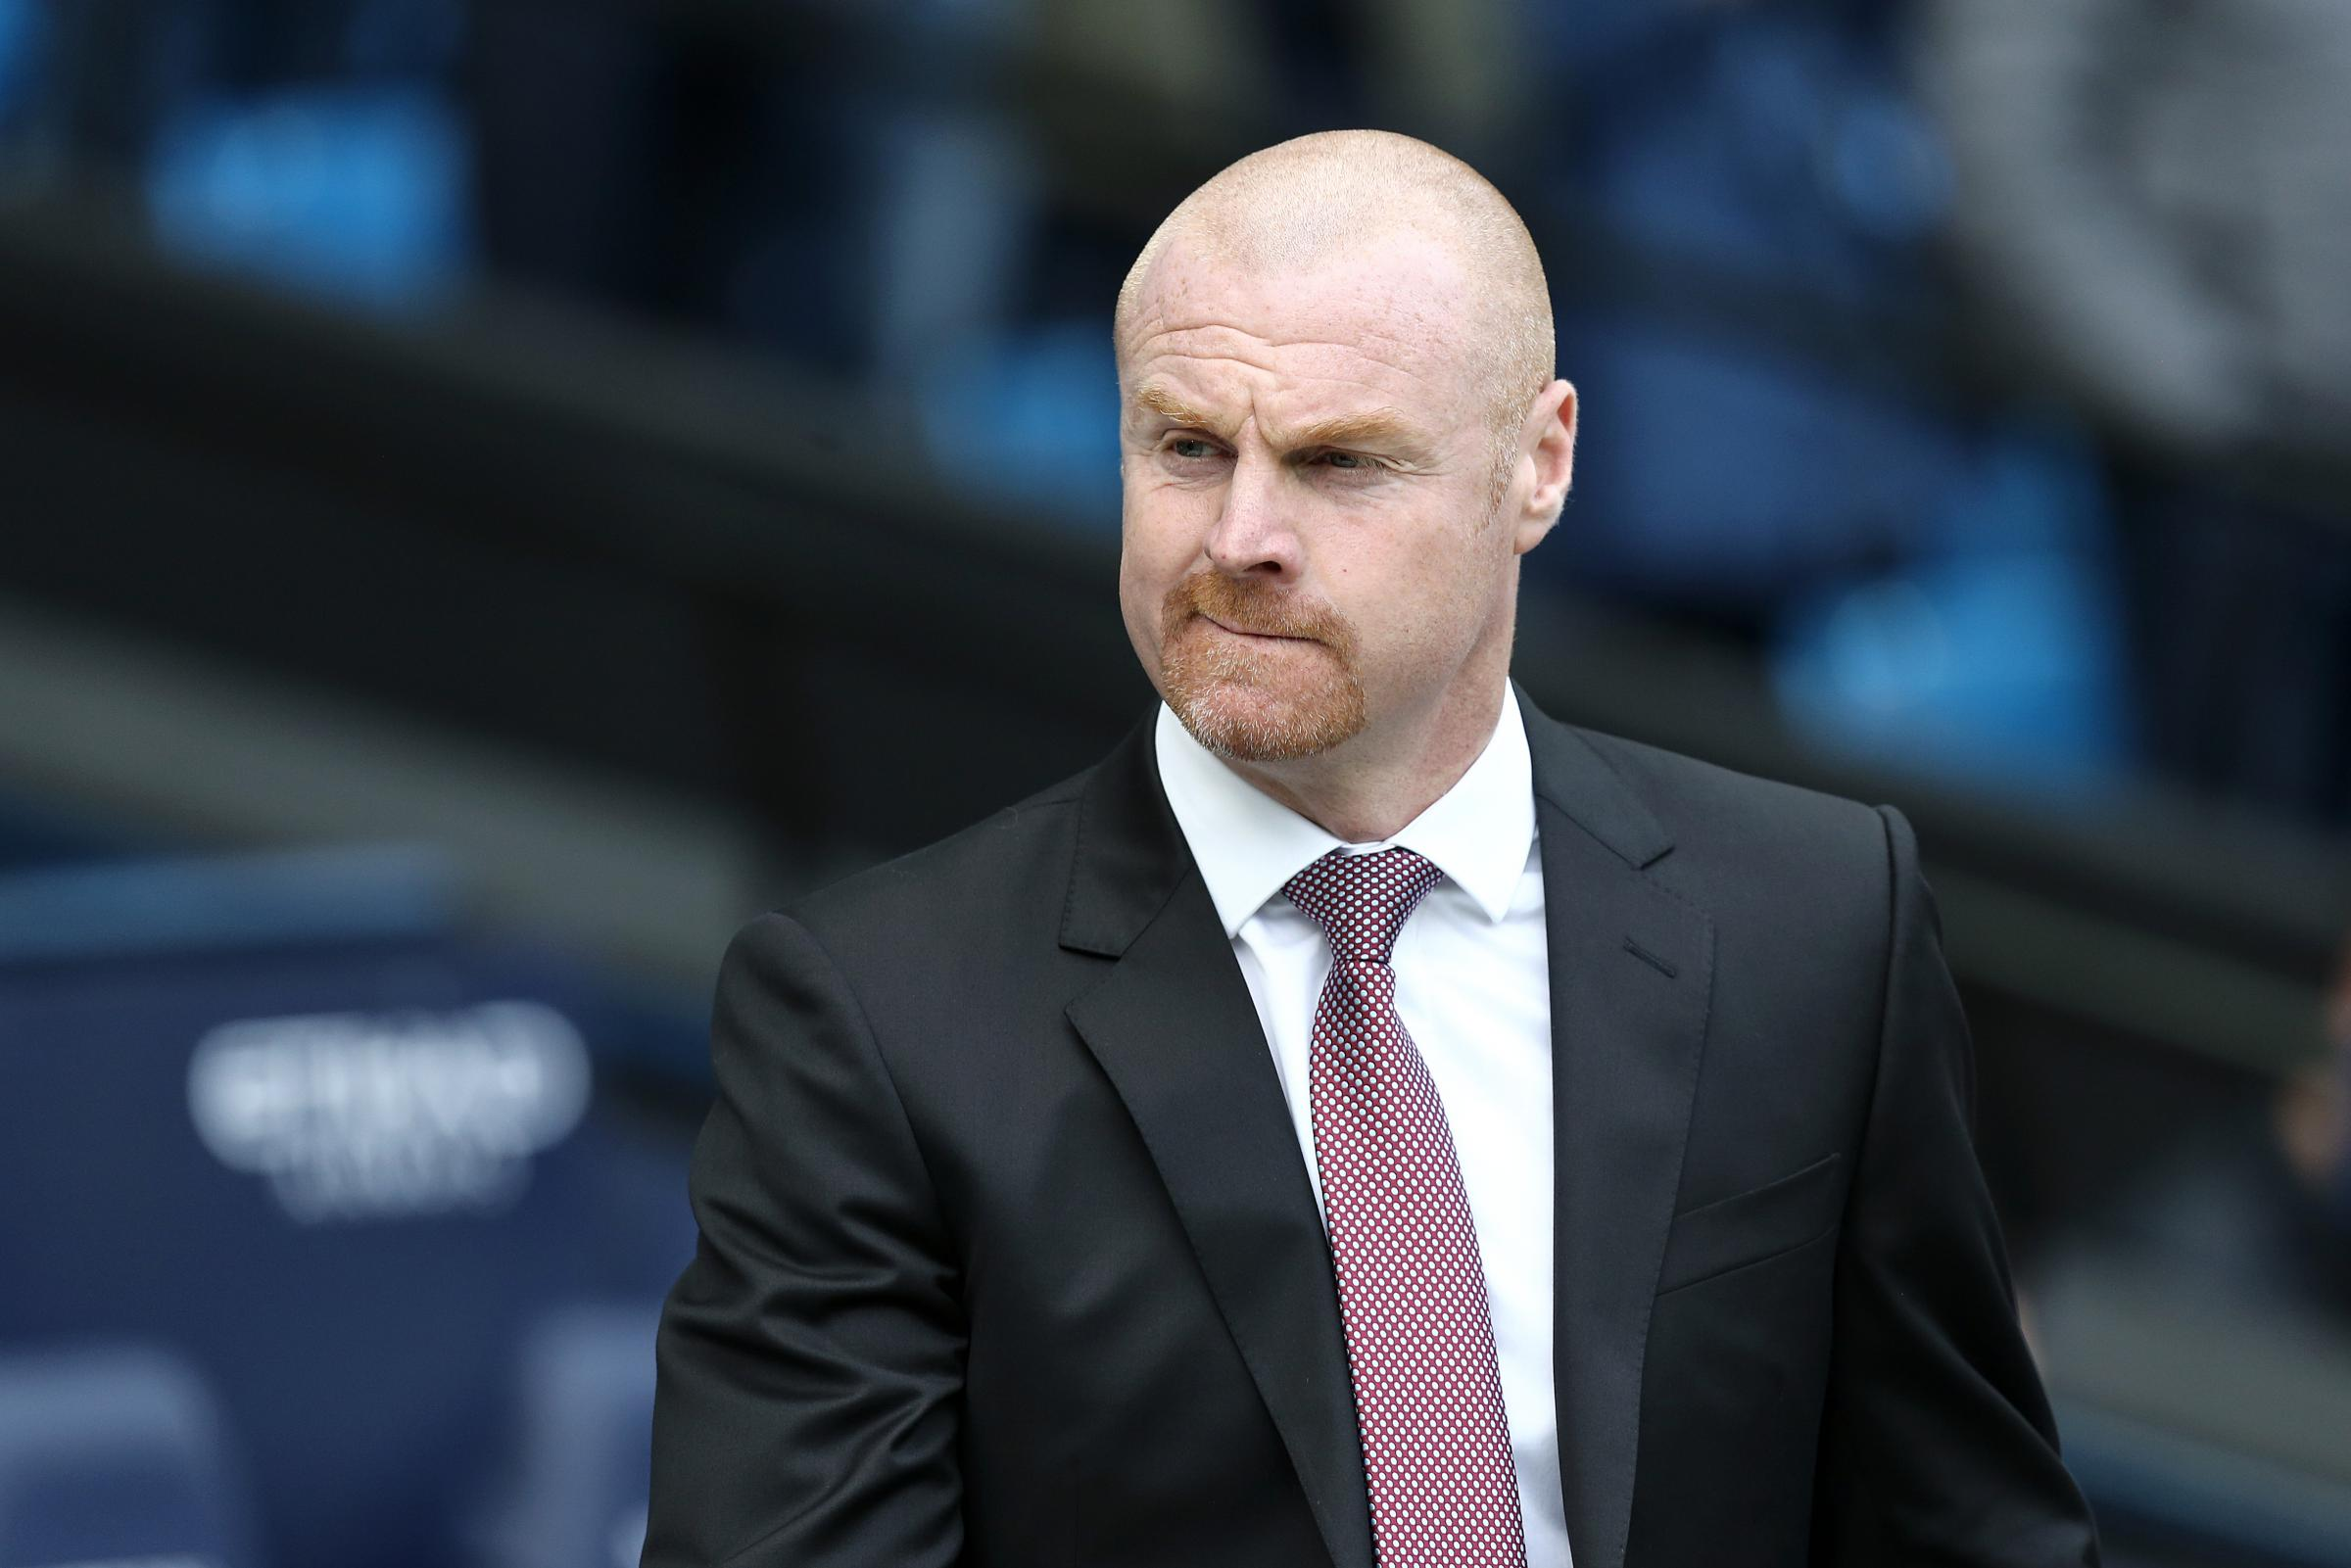 We can play with freedom at Spurs - Dyche